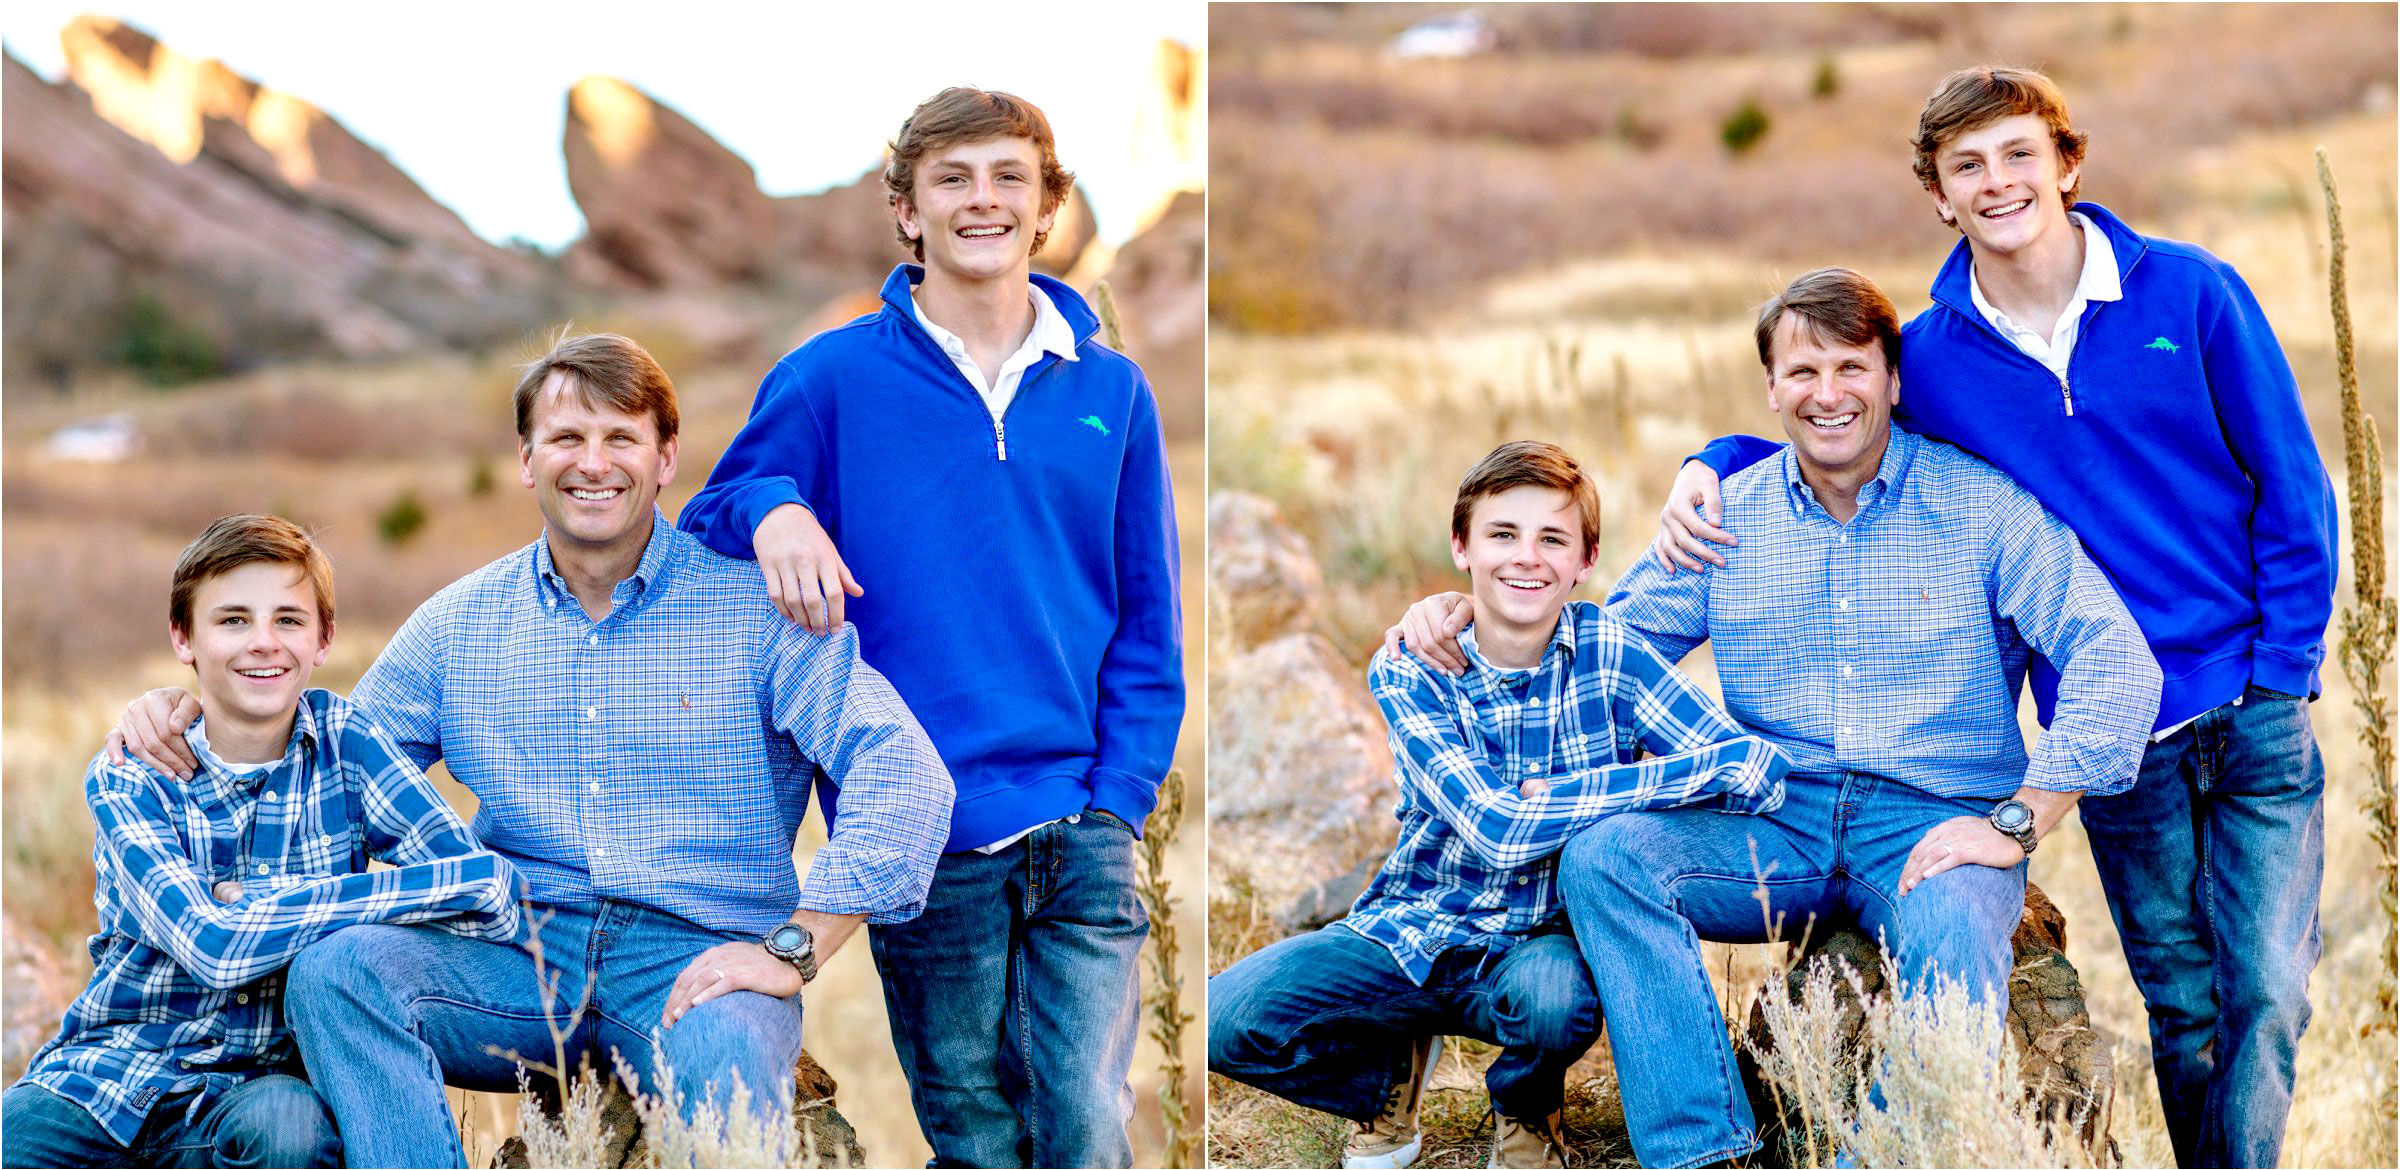 father-son-bonding-during-their-red-rocks-rustic-photo-shoot-004